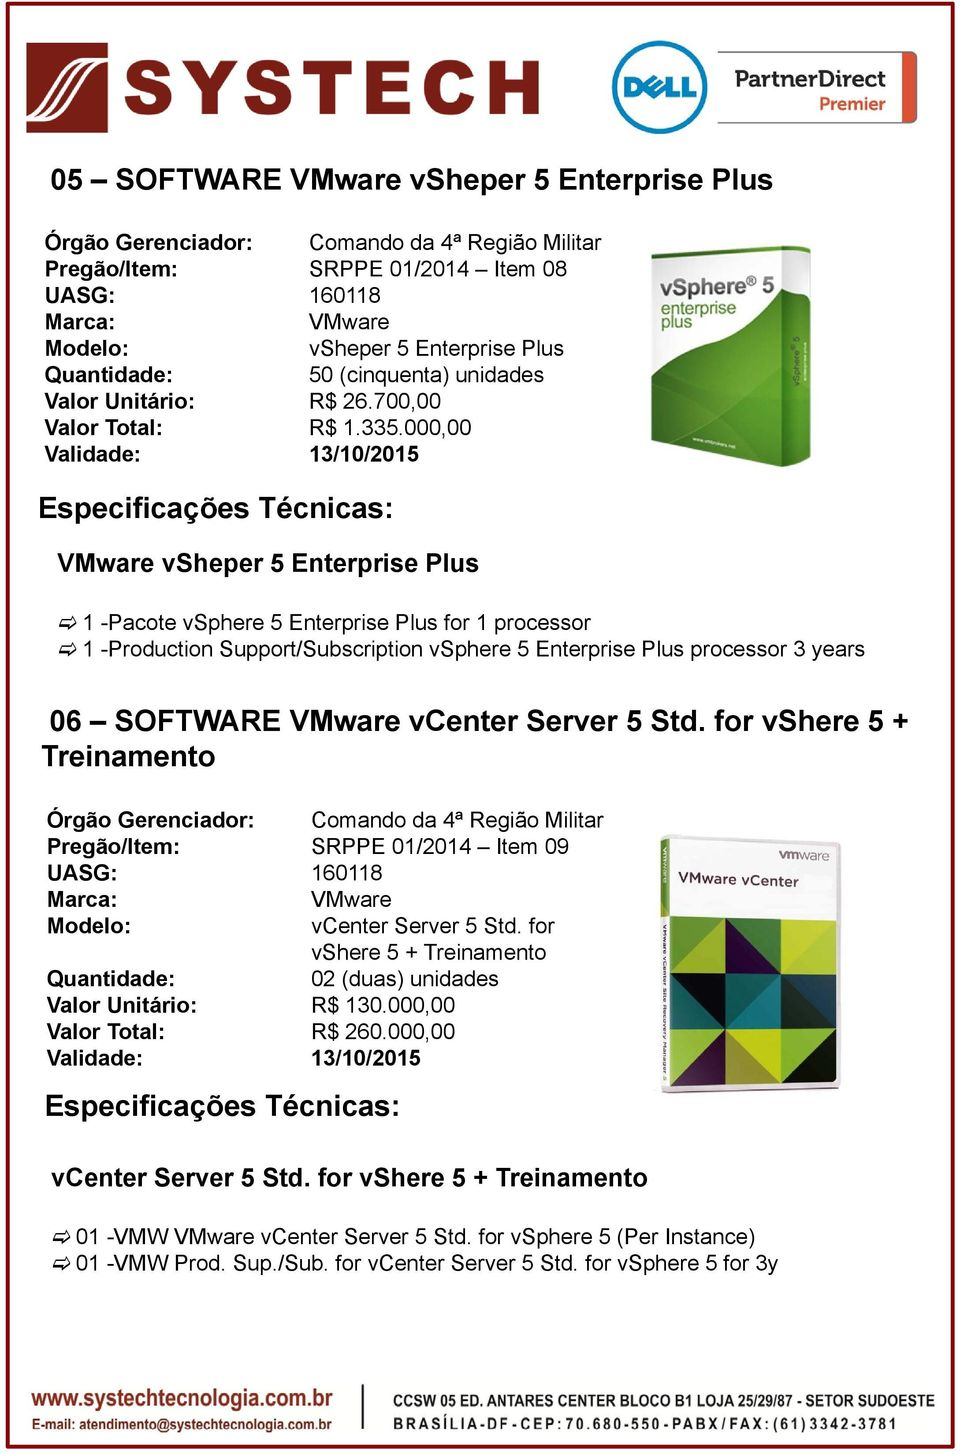 000,00 Validade: 13/10/2015 VMware vsheper 5 Enterprise Plus 1 -Pacote vsphere 5 Enterprise Plus for 1 processor 1 -Production Support/Subscription vsphere 5 Enterprise Plus processor 3years 06